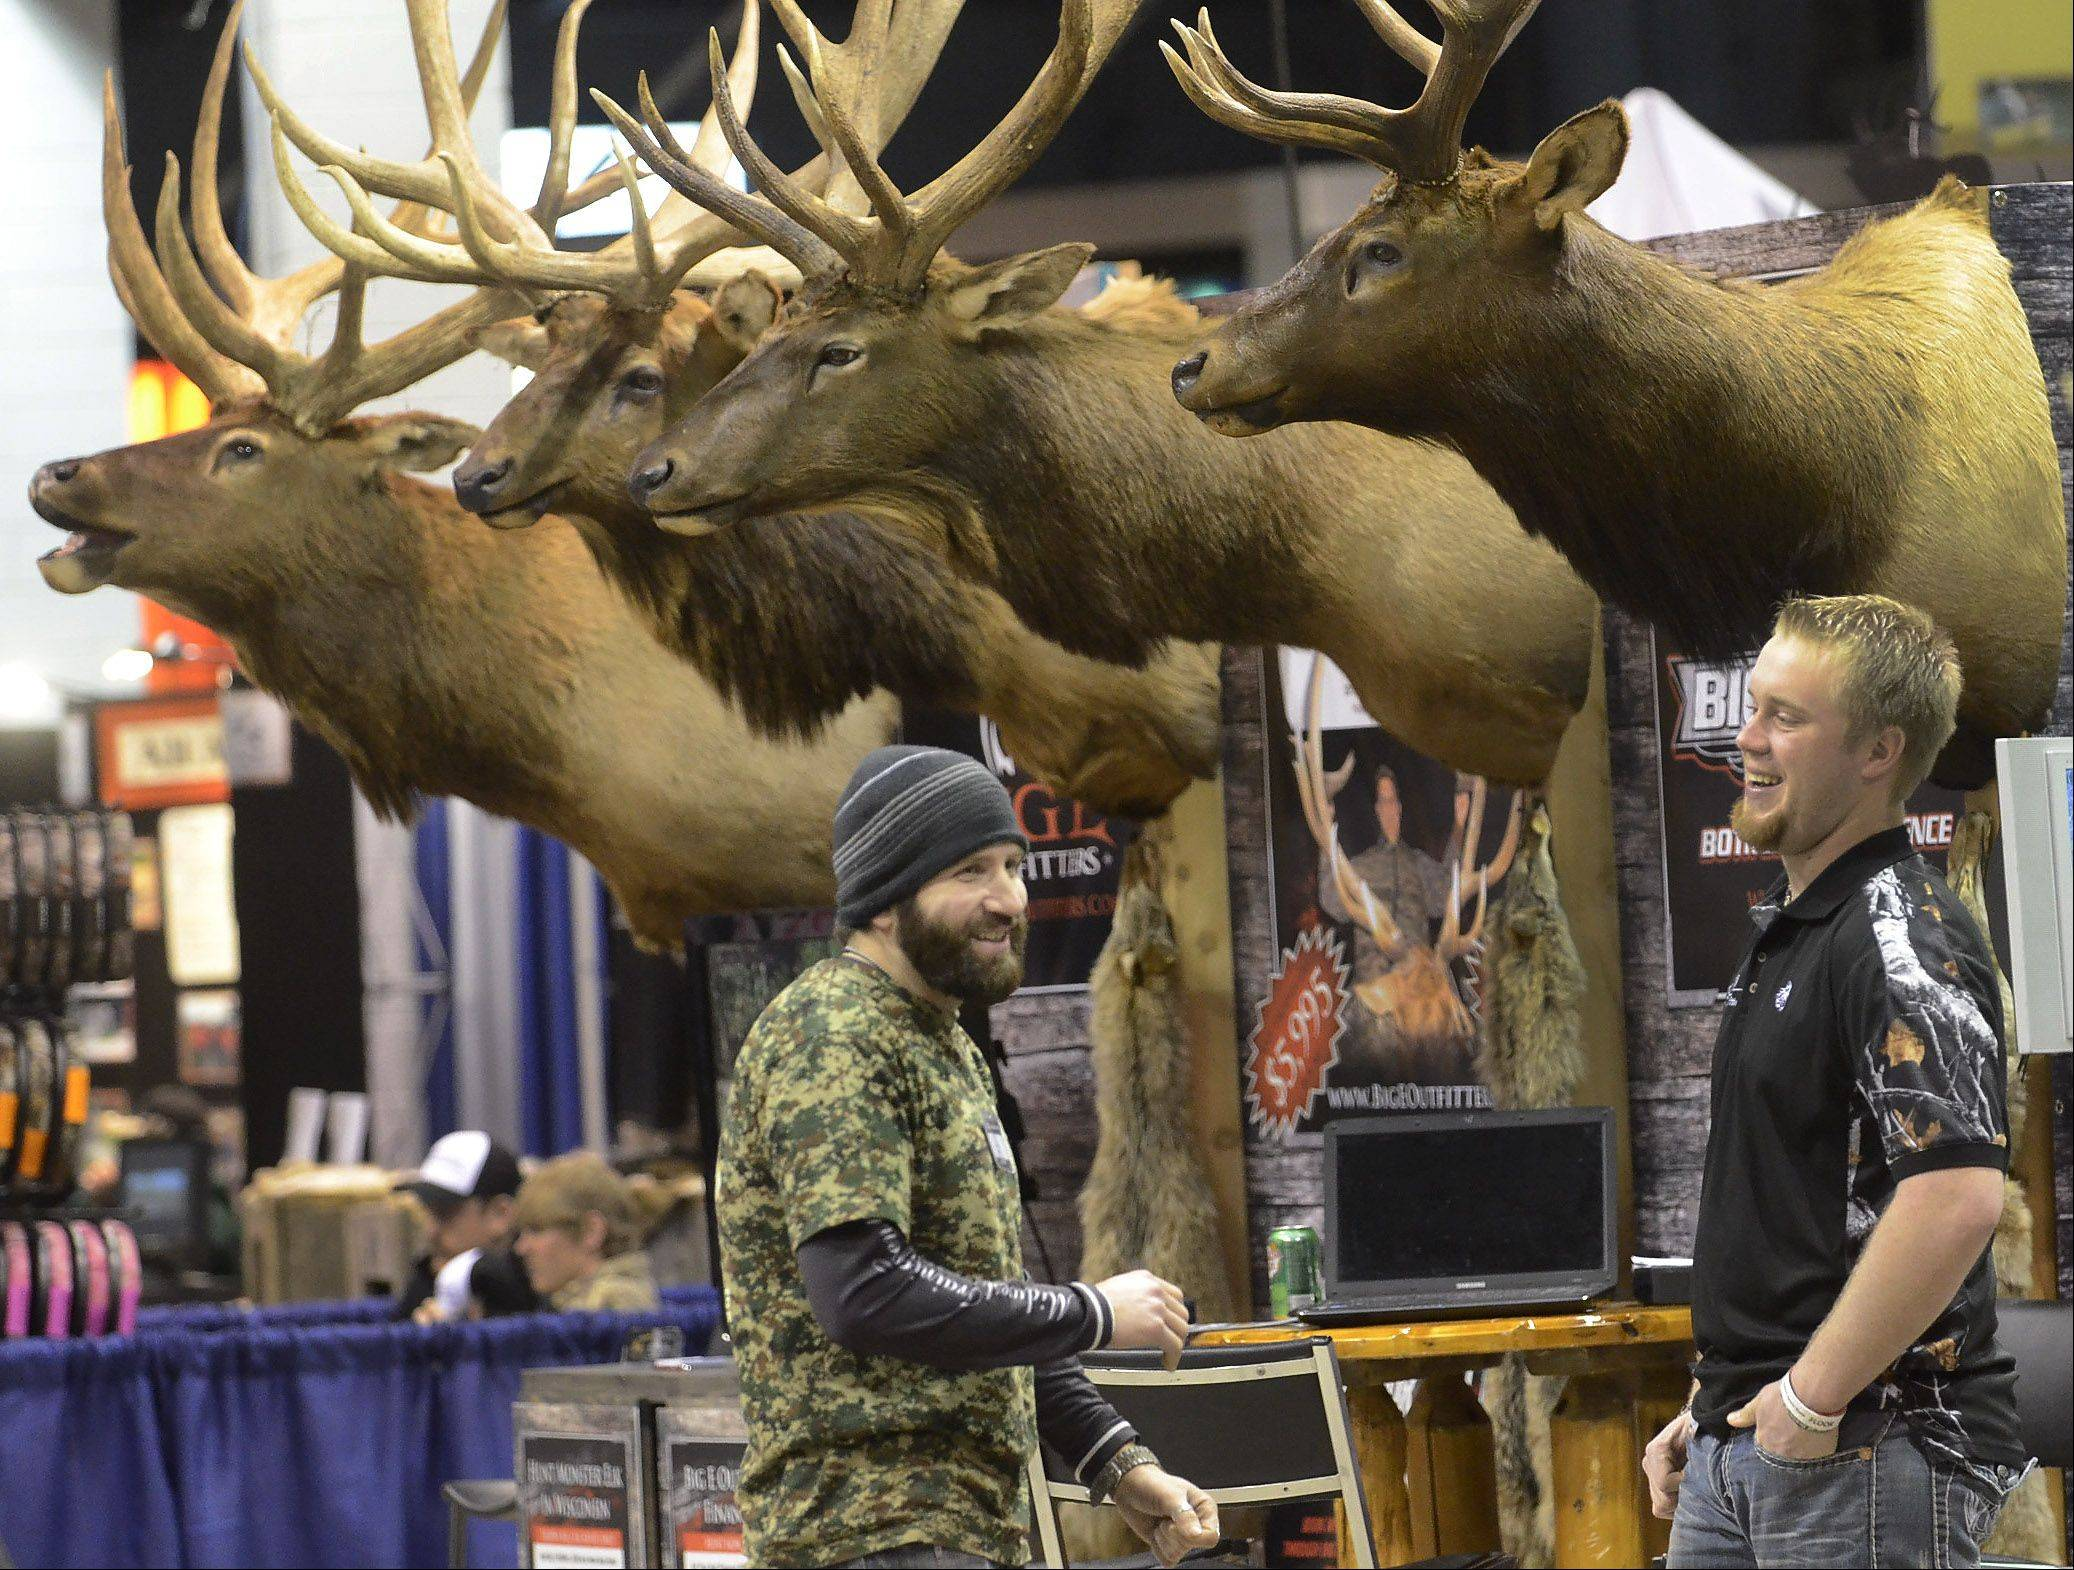 Kevin Finizio, of Addison, left, talks with Brandon Eger, of Big E Outfitters, at the 28th Annual Chicago Outdoor Sports Show at the Donald E. Stephens Convention Center in Rosemont.